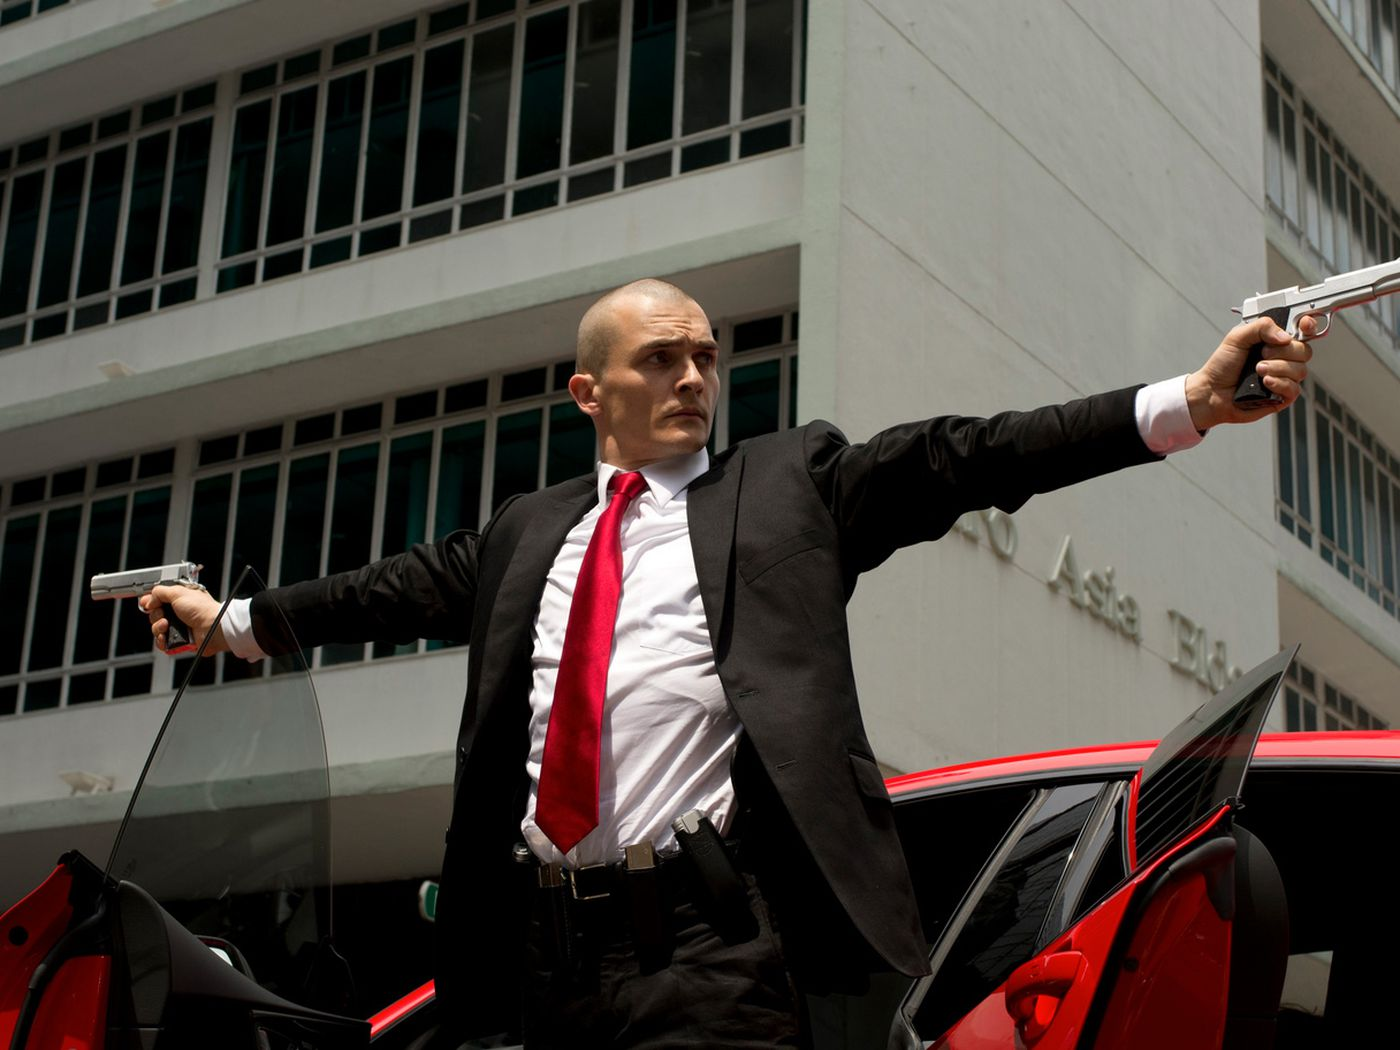 Here S A First Look At Agent 47 In The Upcoming Movie Hitman